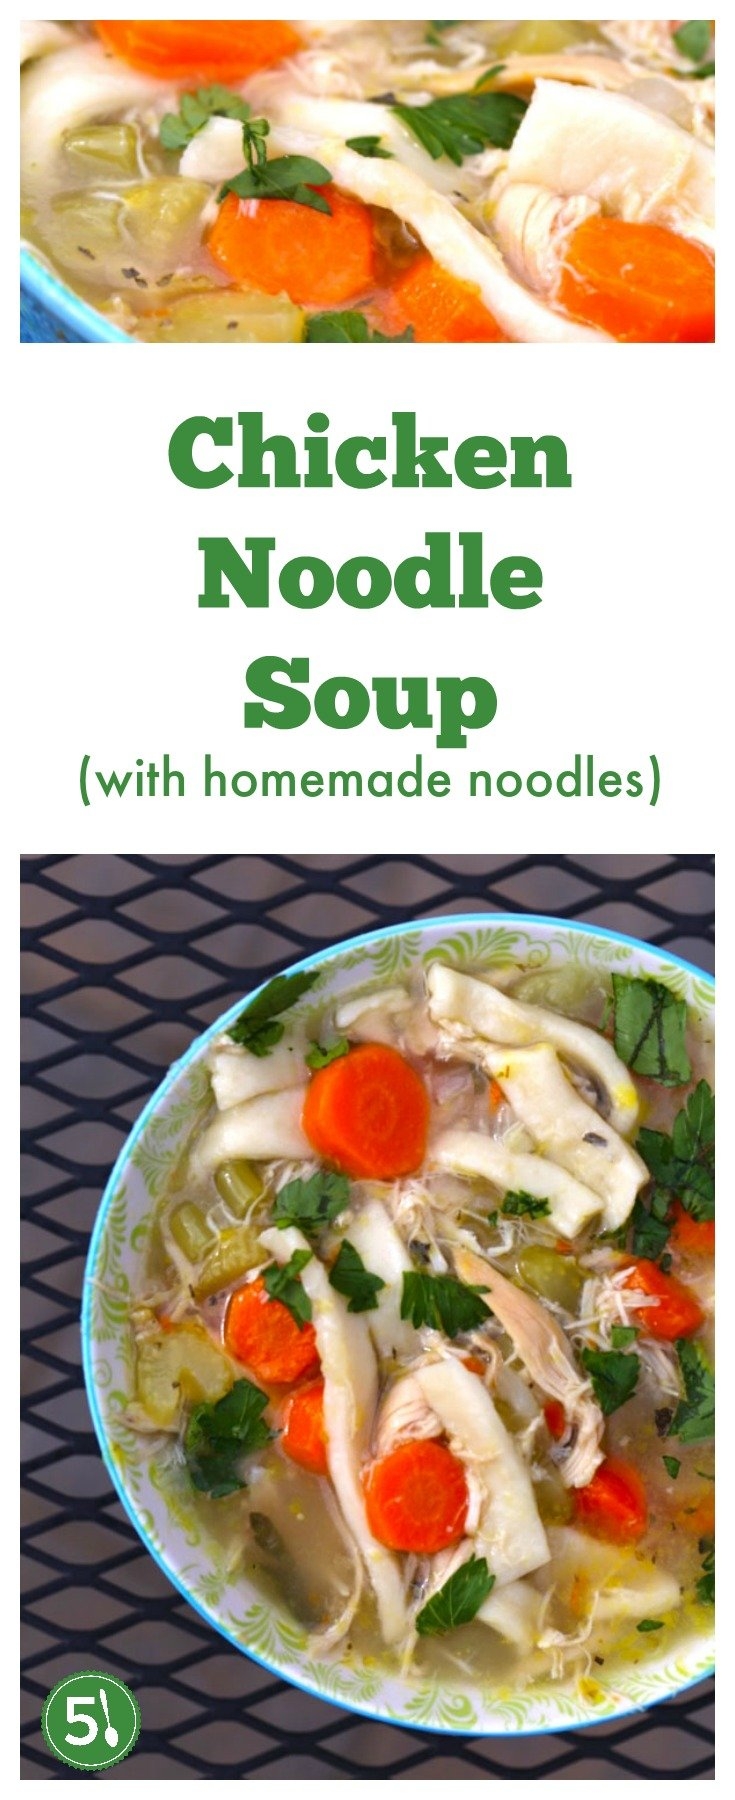 Easy homemade chicken noodle soup with rotisserie chicken, celery, carrots, onions, basil, oregano and garlic. Recipe includes from scratch noodles that are surprisingly quick to prepare.